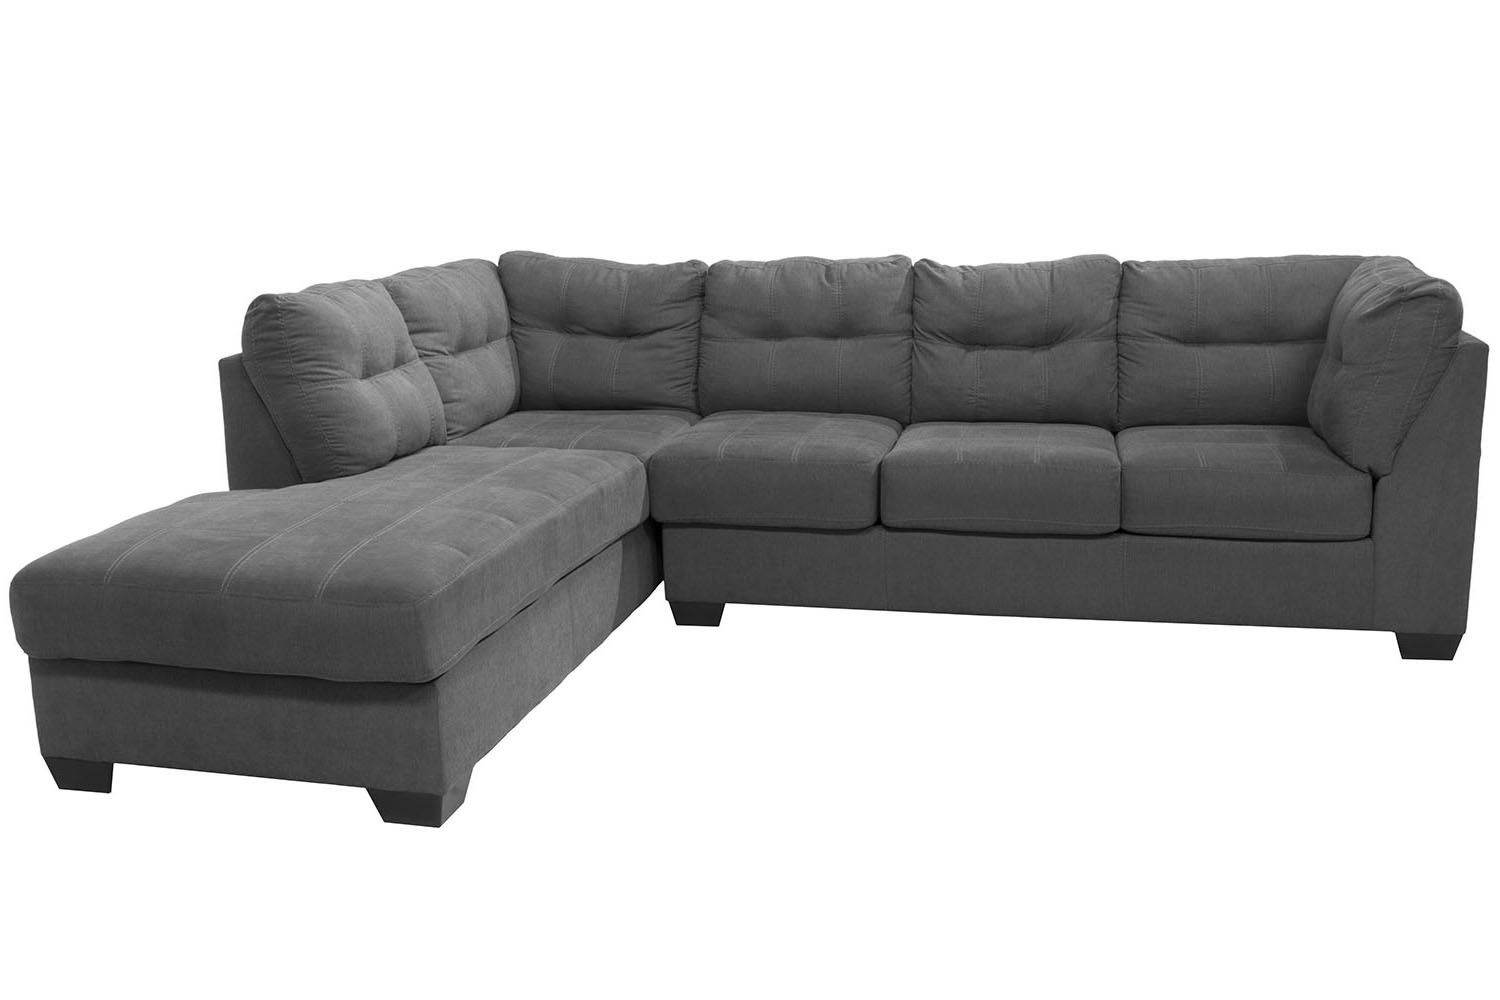 Mor Furniture For Less The Maier Left Facing Chaise Sectional Mor Furniture For Less Living